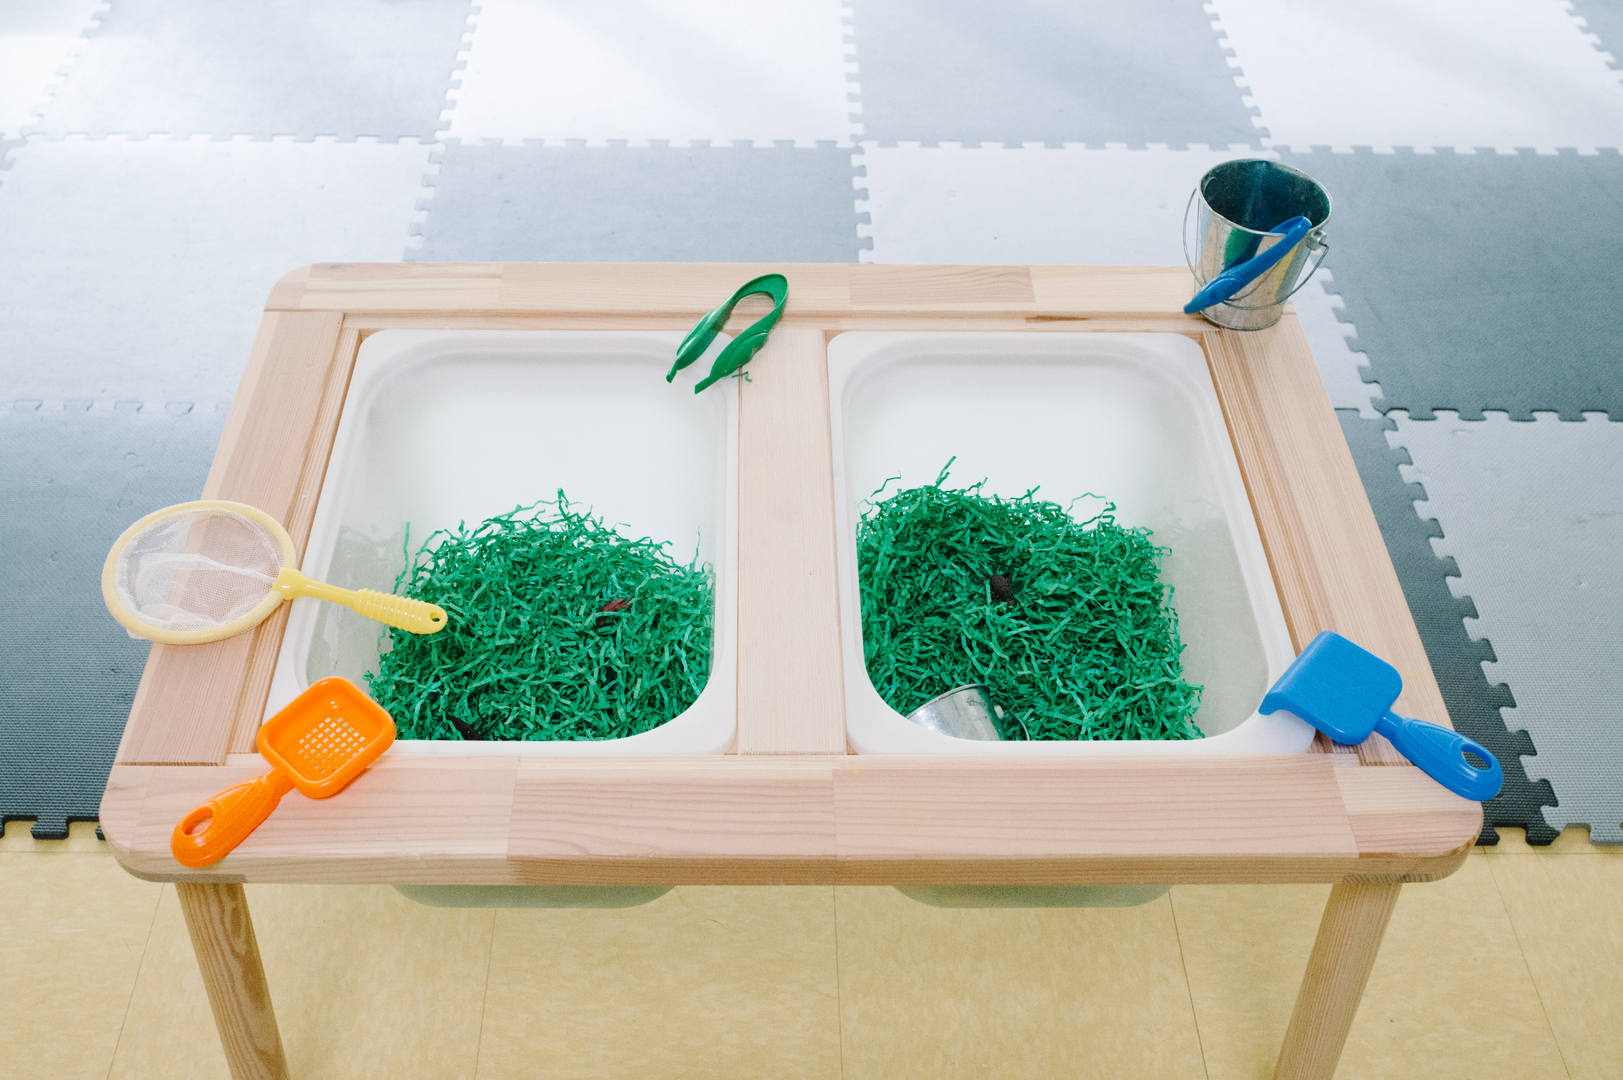 Our sensory materials and tools rotate every 3 weeks.